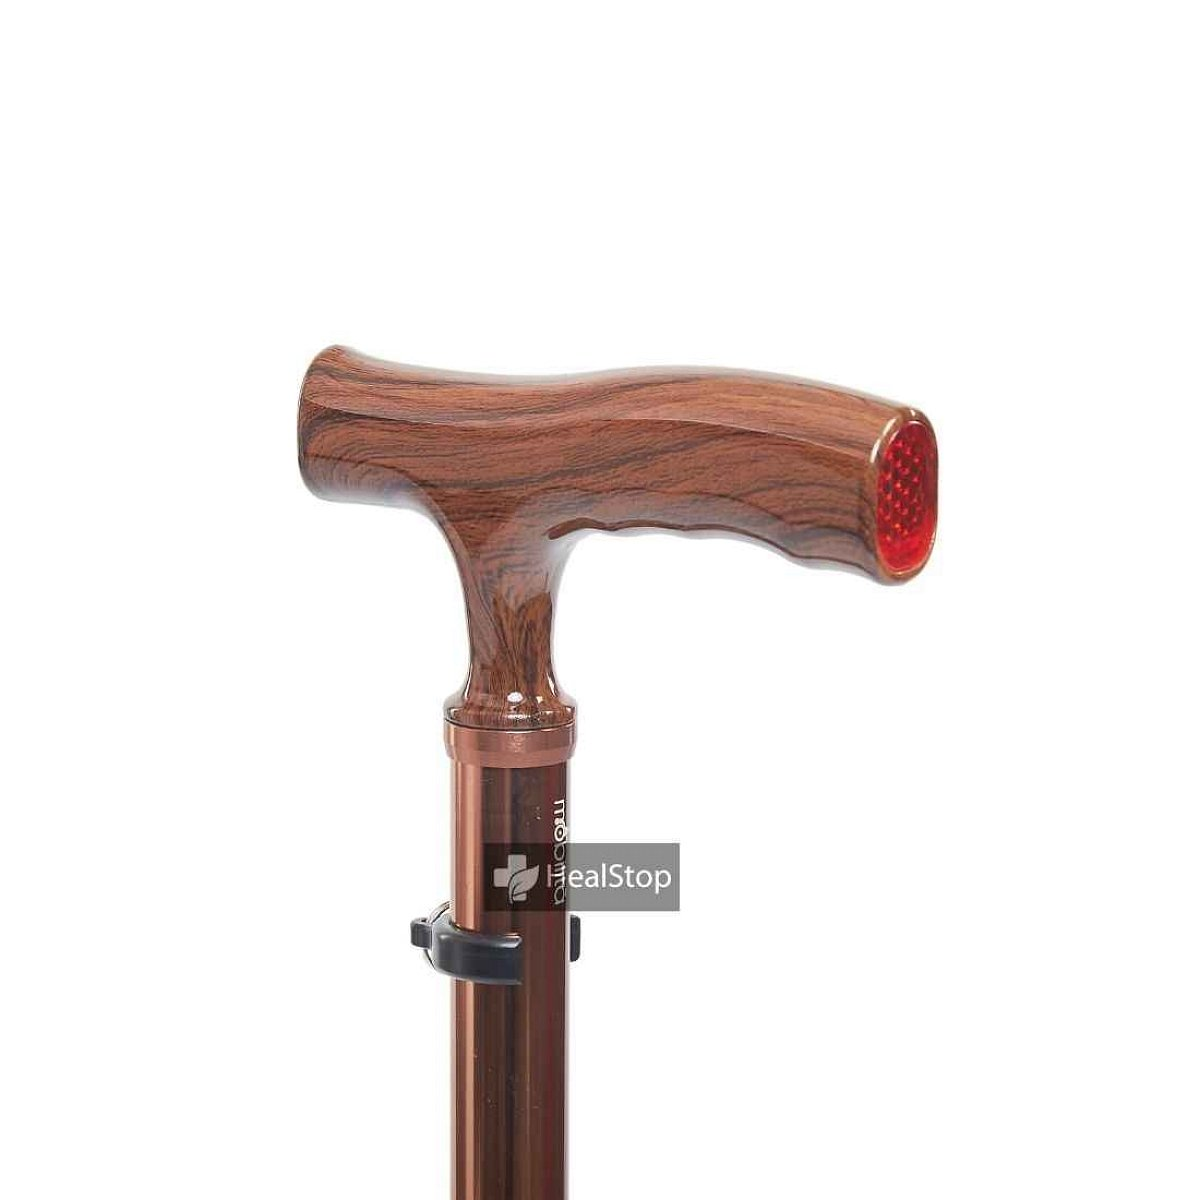 Straight Shank Handle Cane M703 (Champagne Brown)